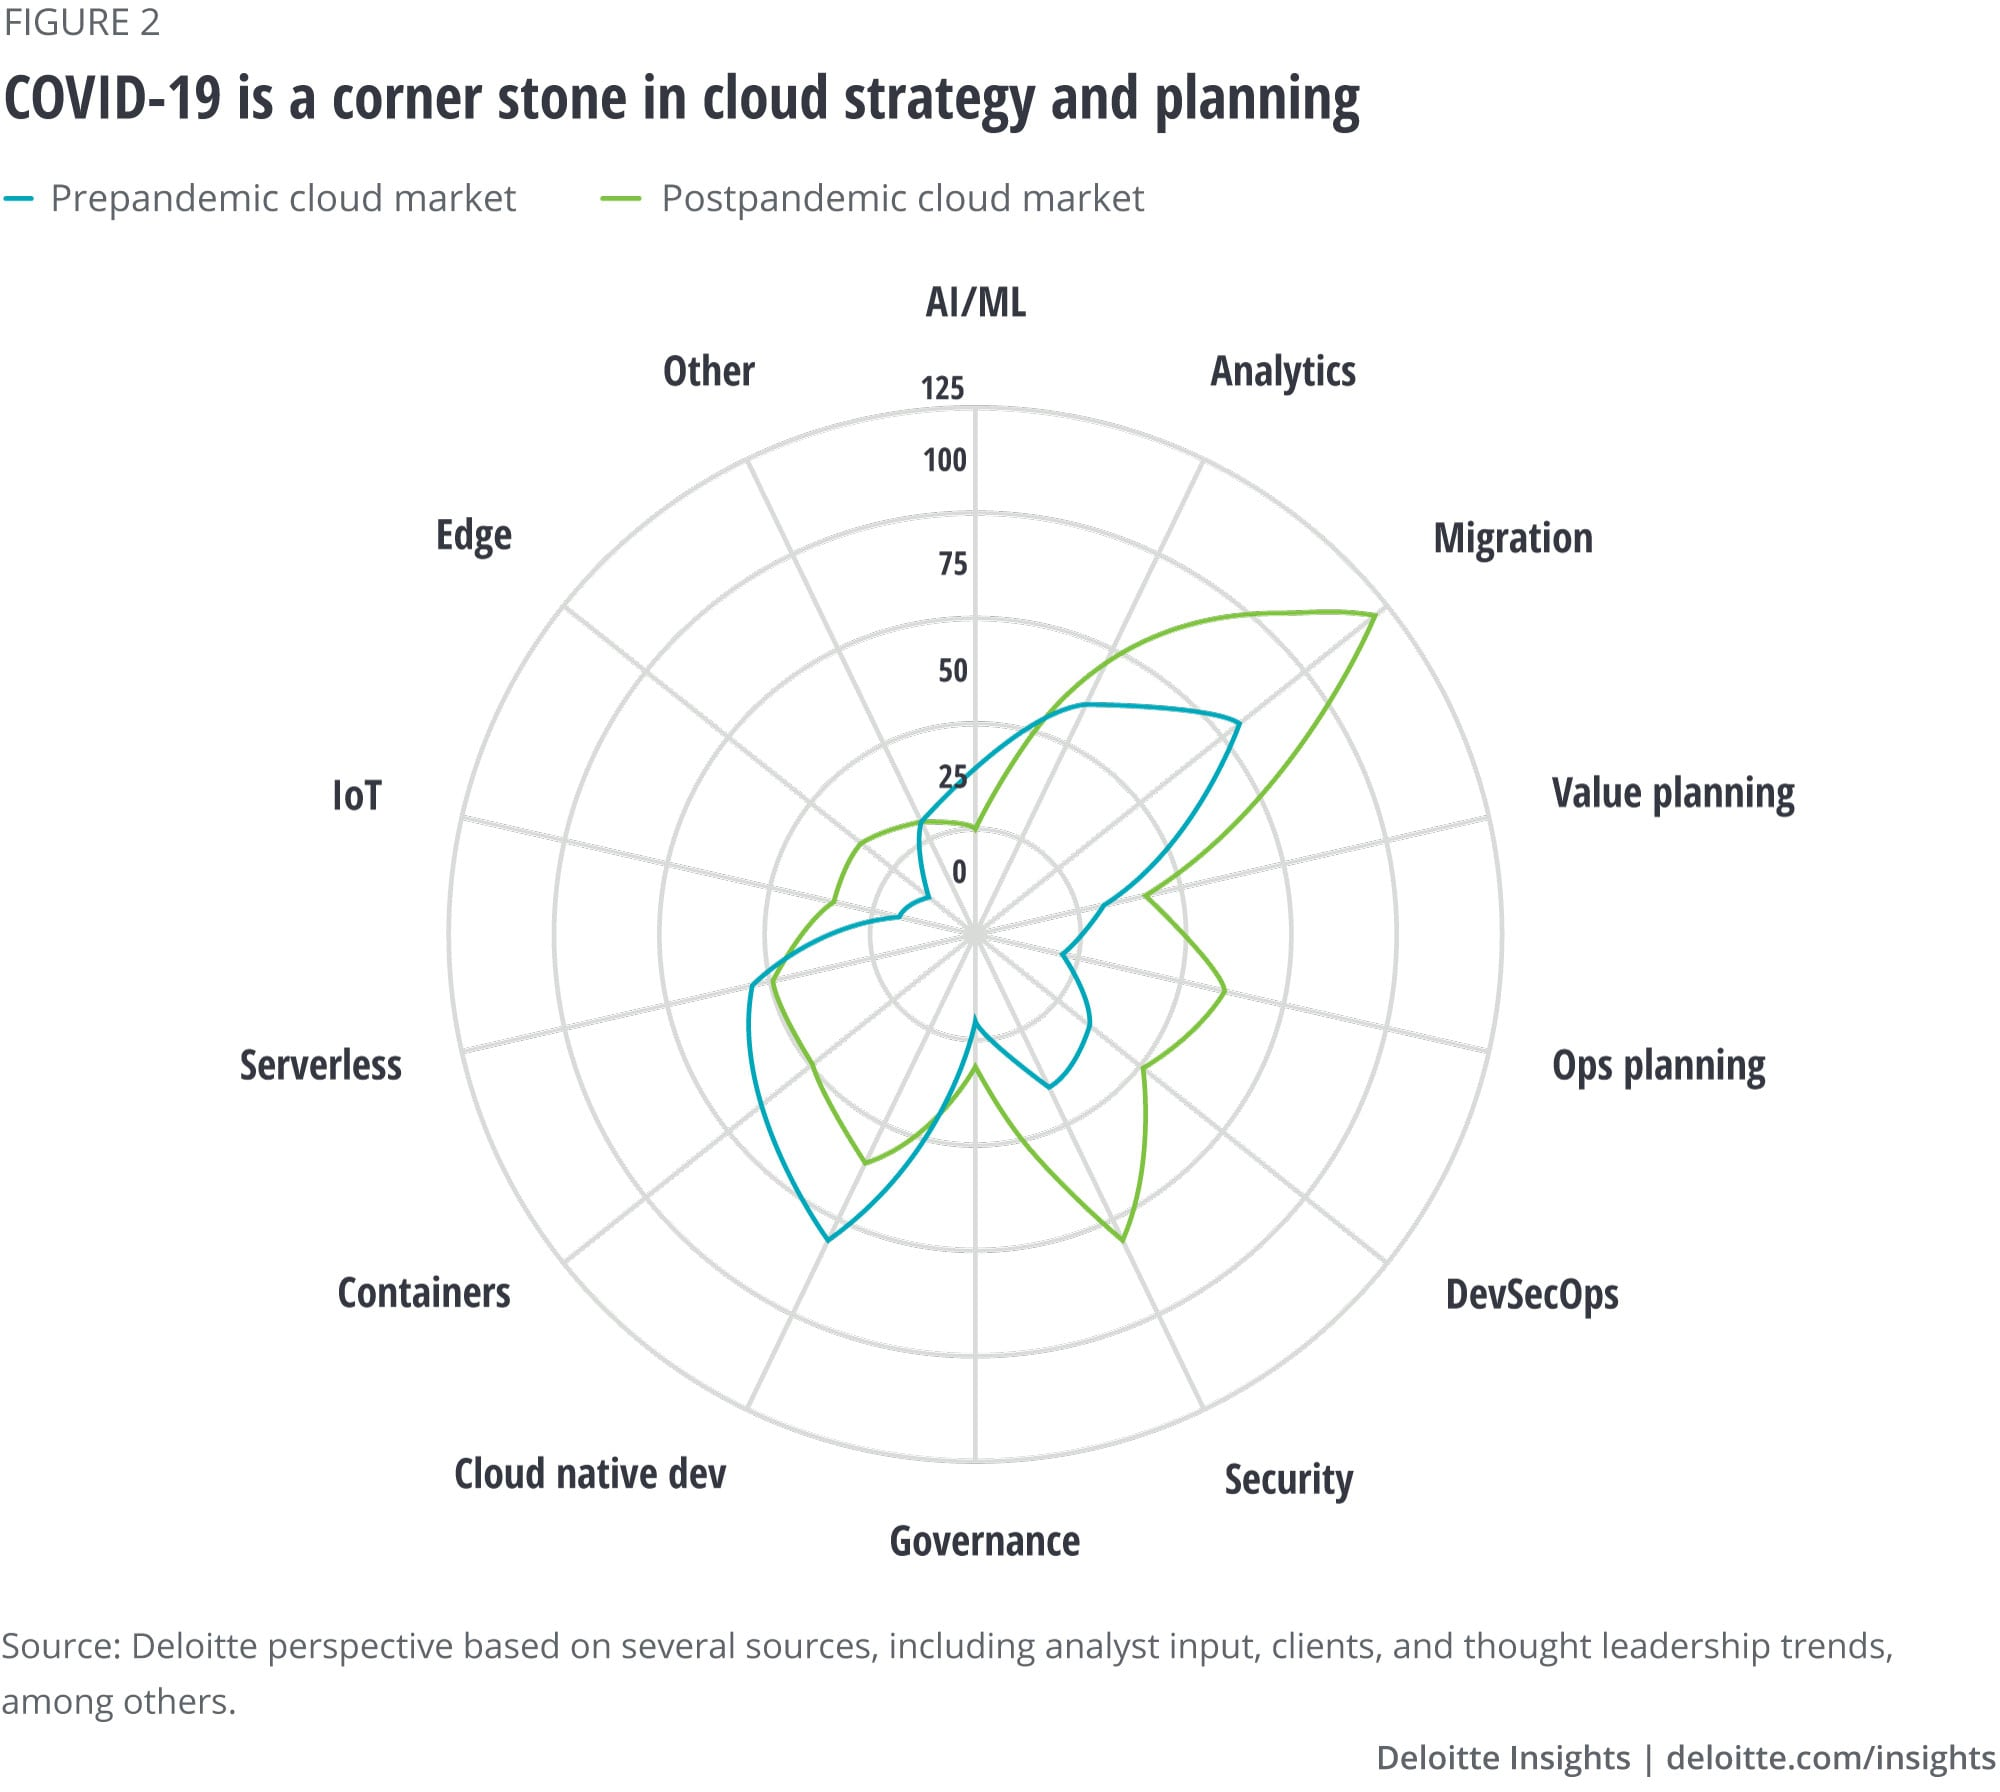 COVID-19 is a cornerstone in cloud strategy and planning